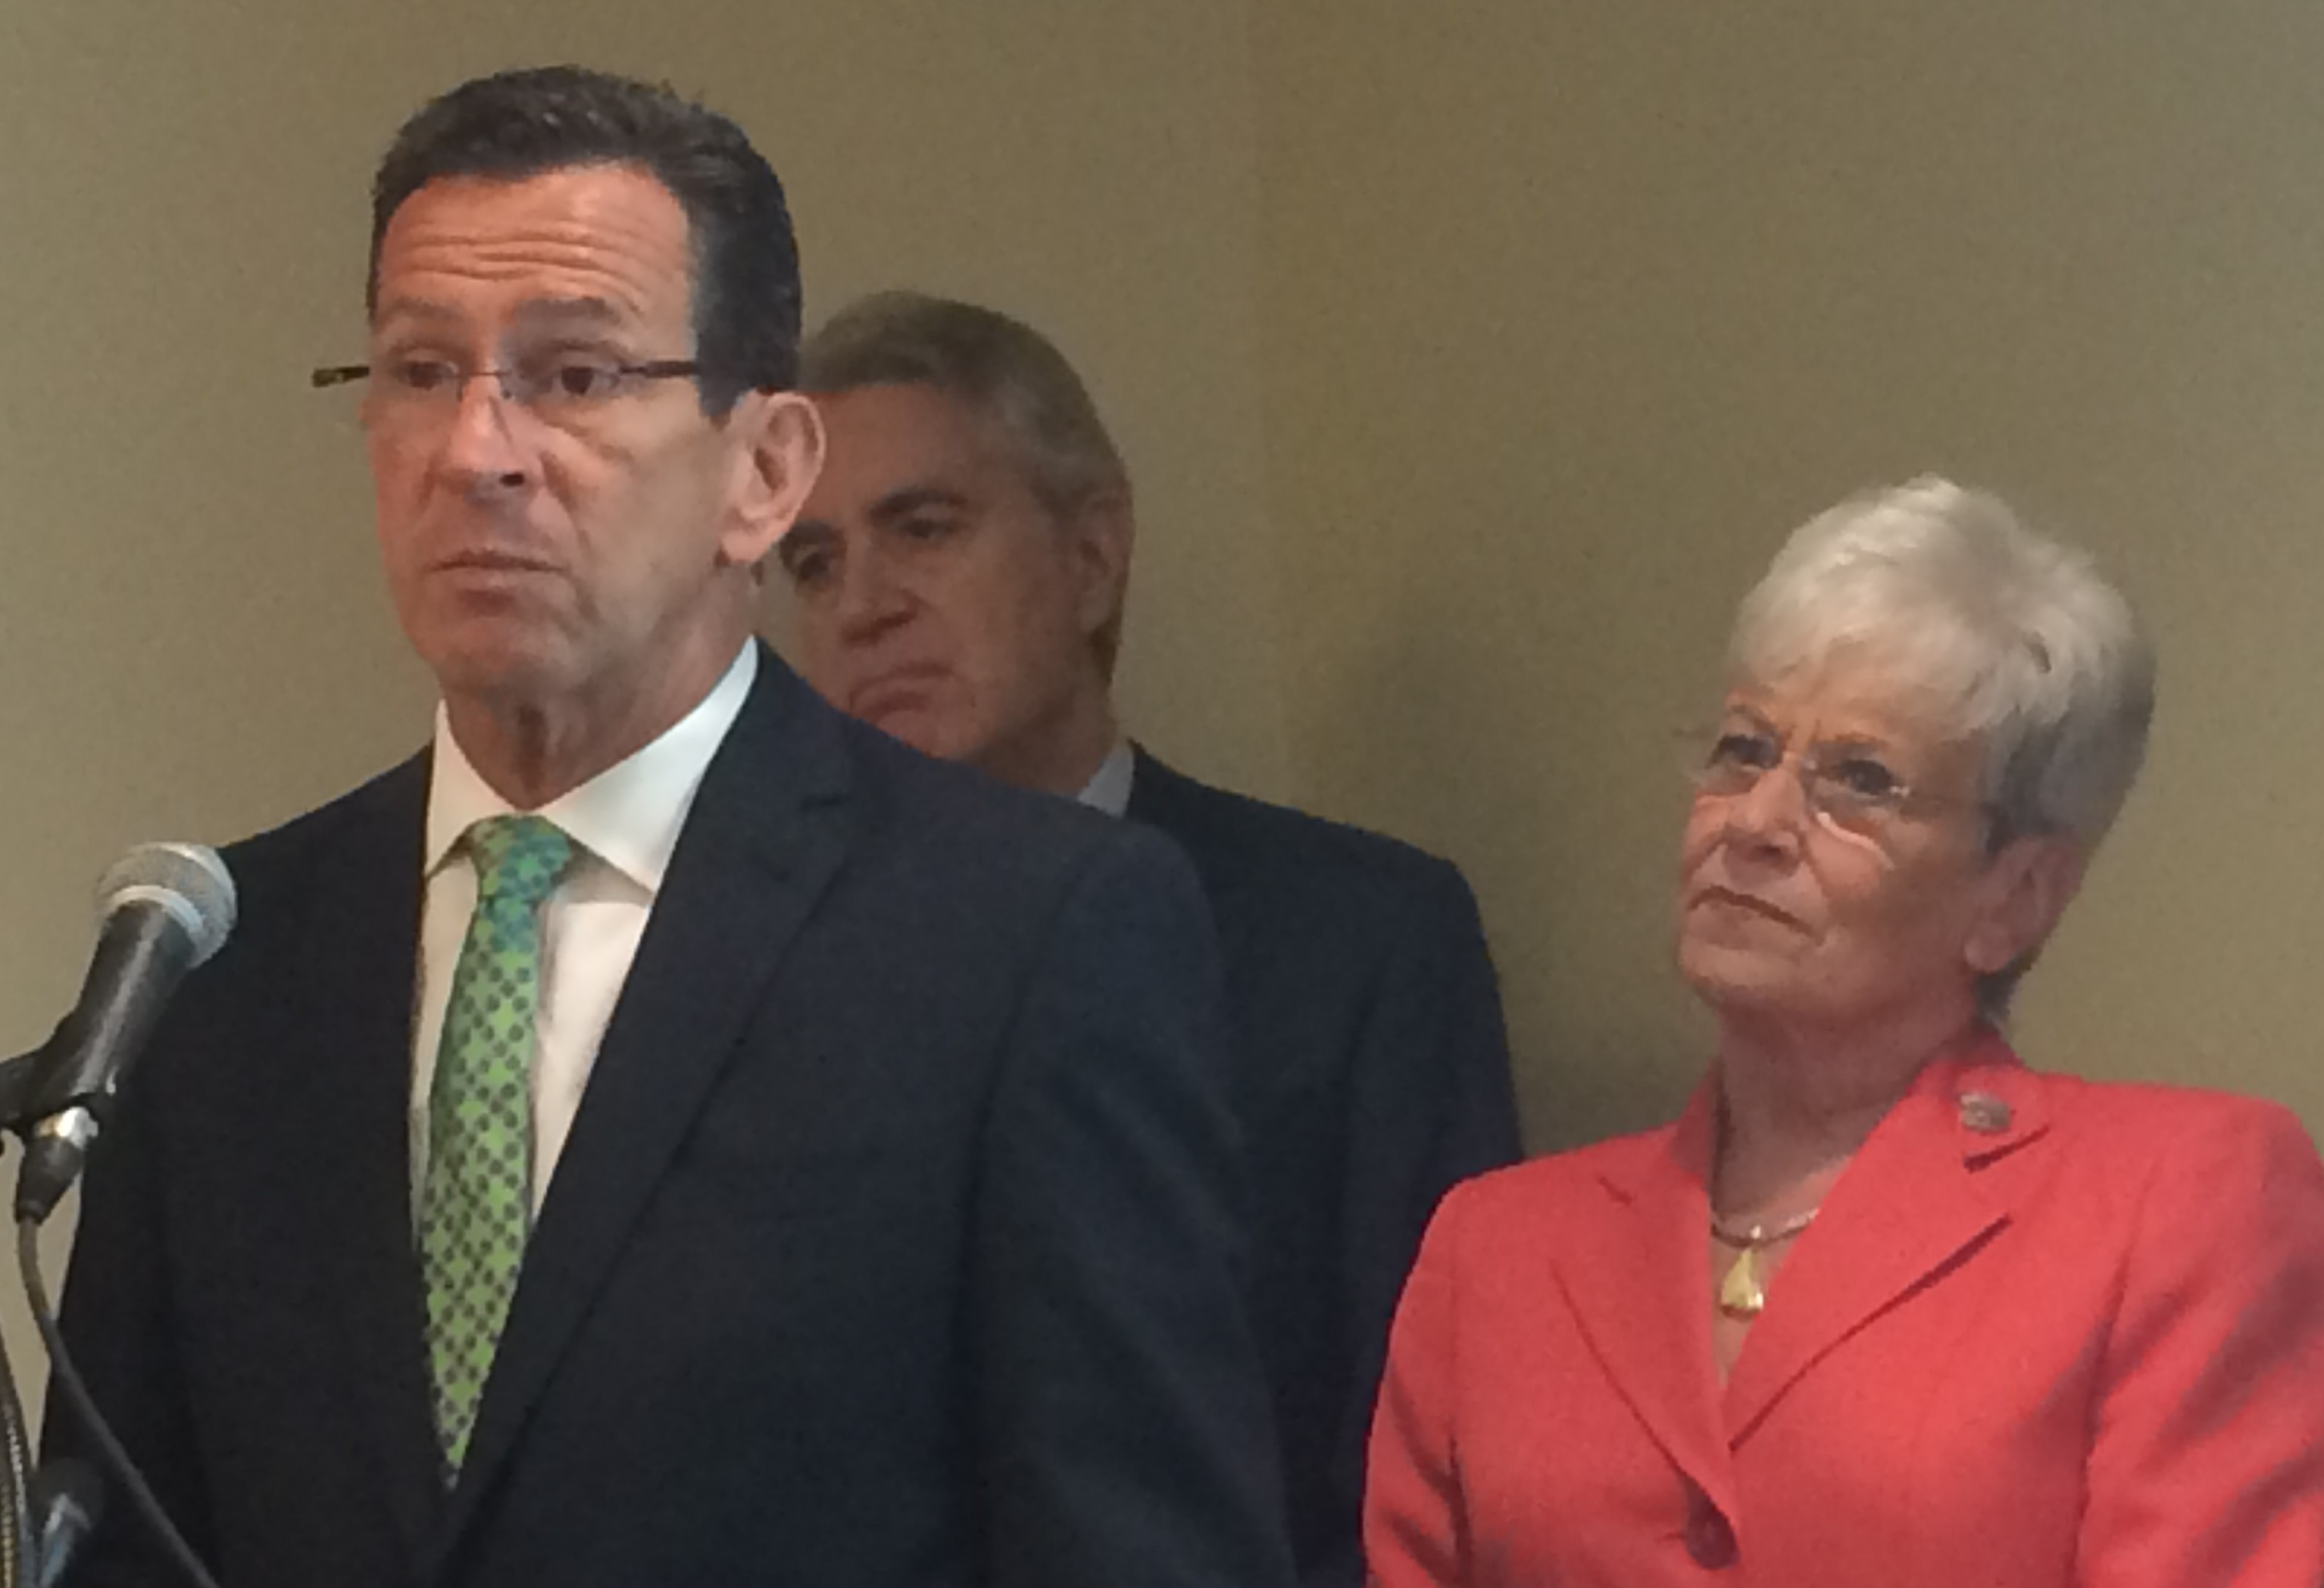 Malloy celebrates drop in uninsured, credits Obamacare